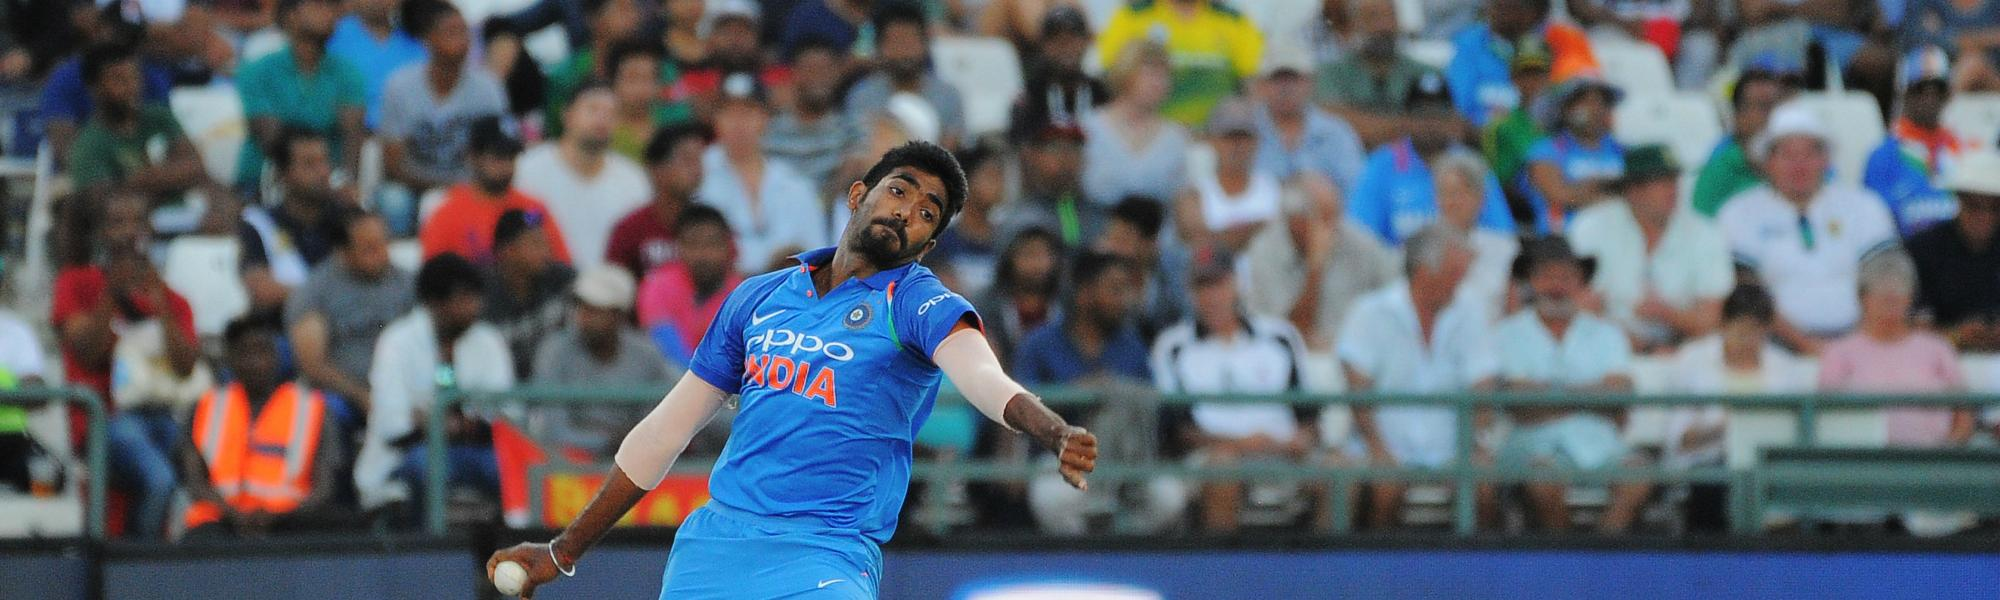 Bumrah claimed two wickets and gave away as many runs in the 19th over